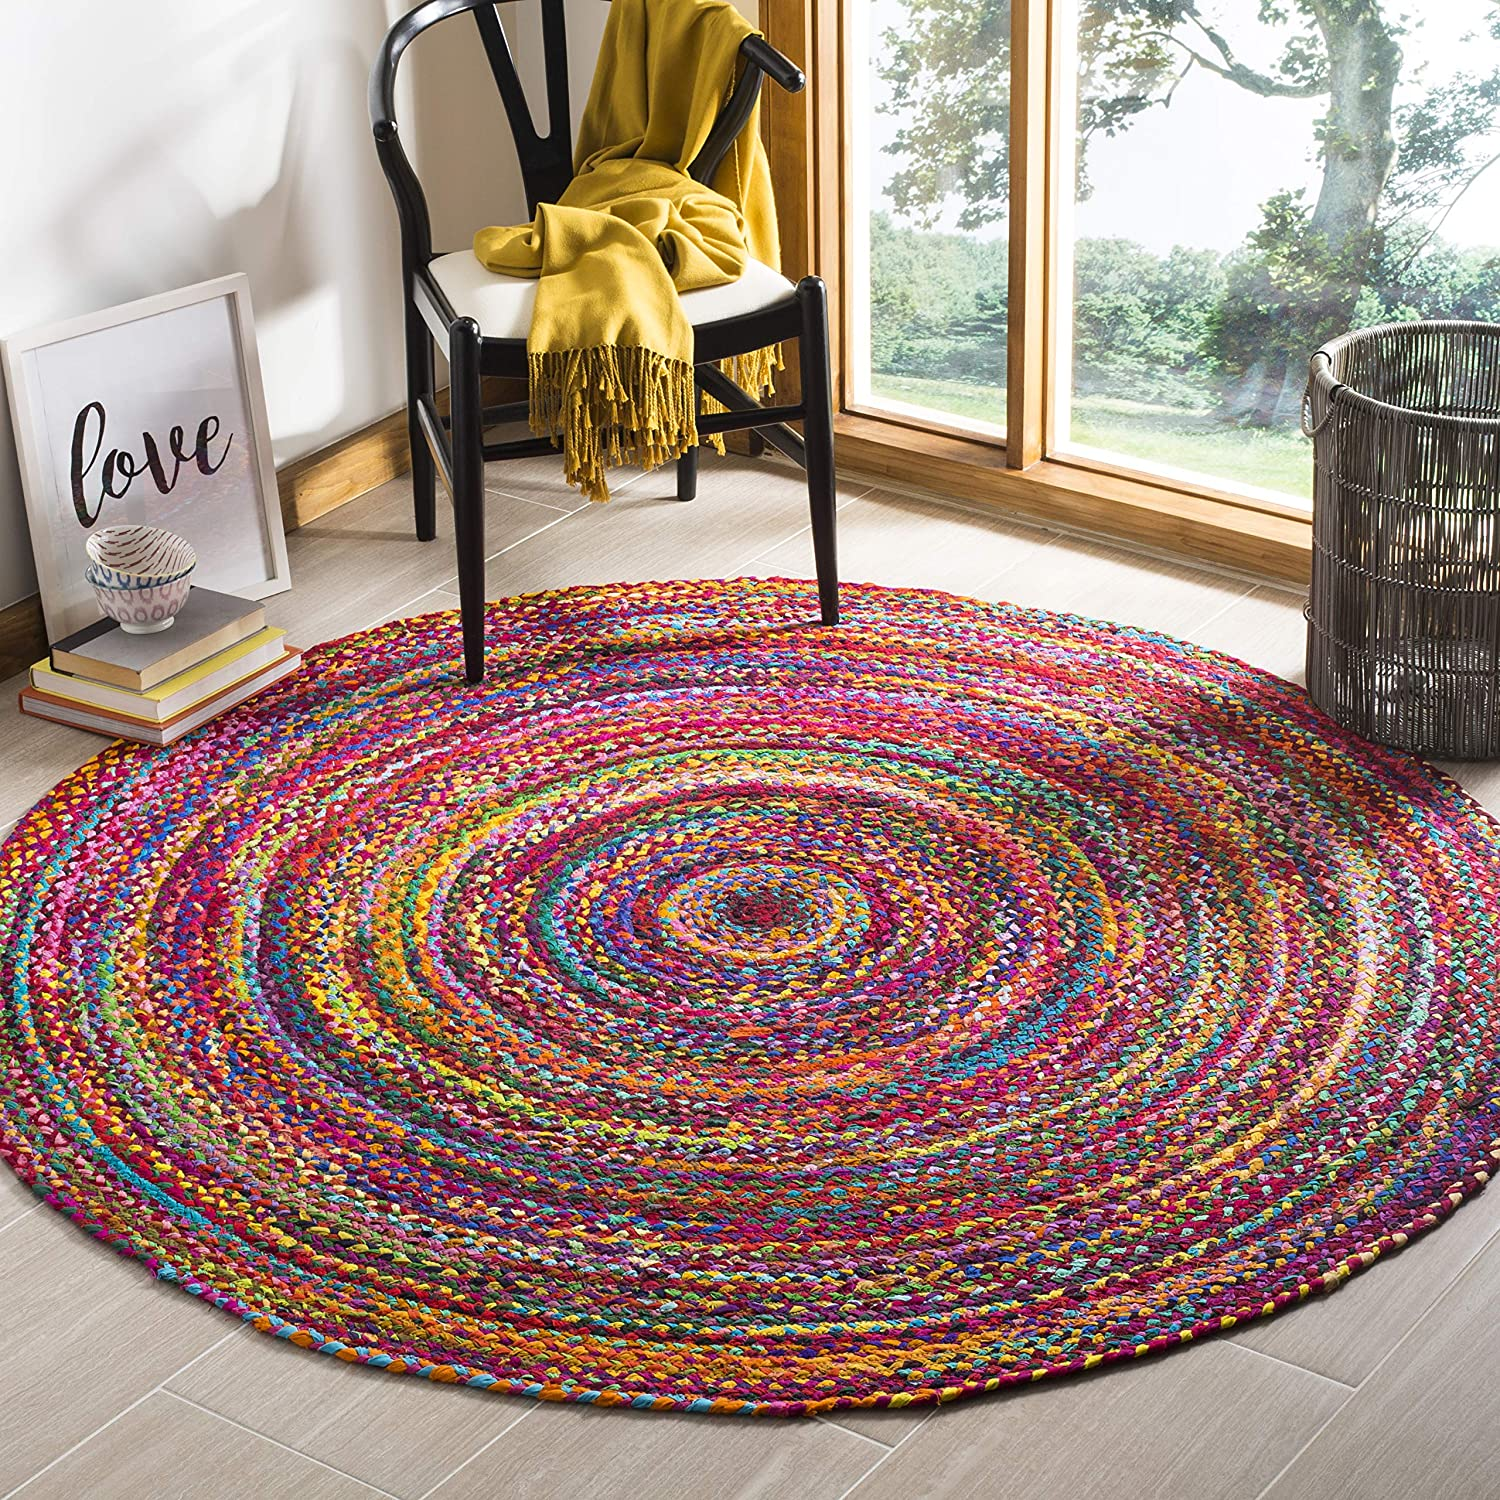 Safavieh Braided Collection BRD210A Hand-woven Bohemian Cotton Area Rug, 4' Round, Red/Multi